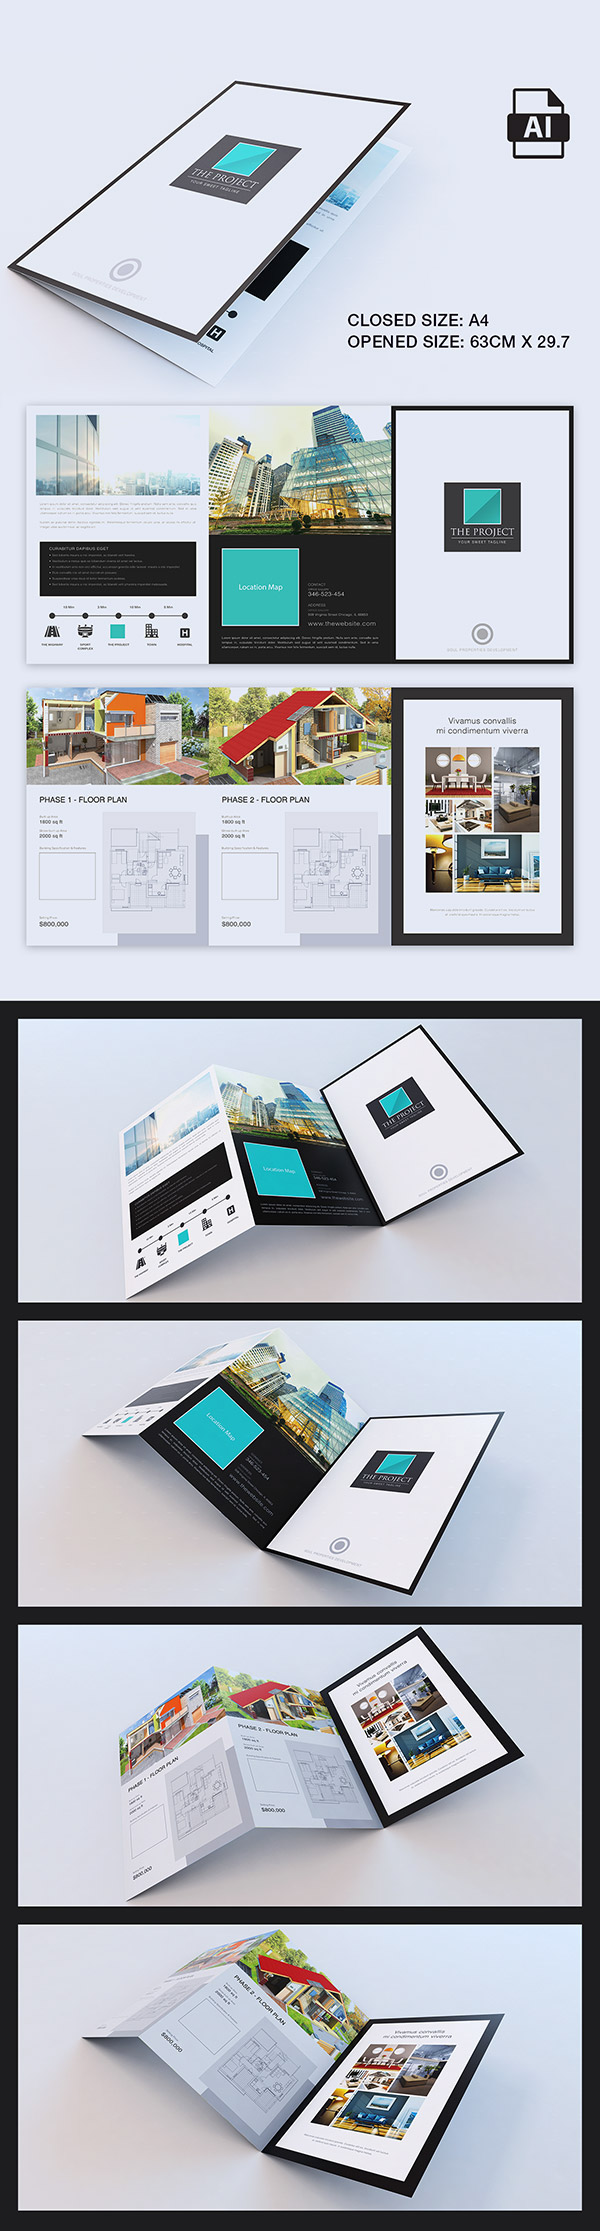 adobe illustrator brochure template. | design business | pinterest, Powerpoint templates